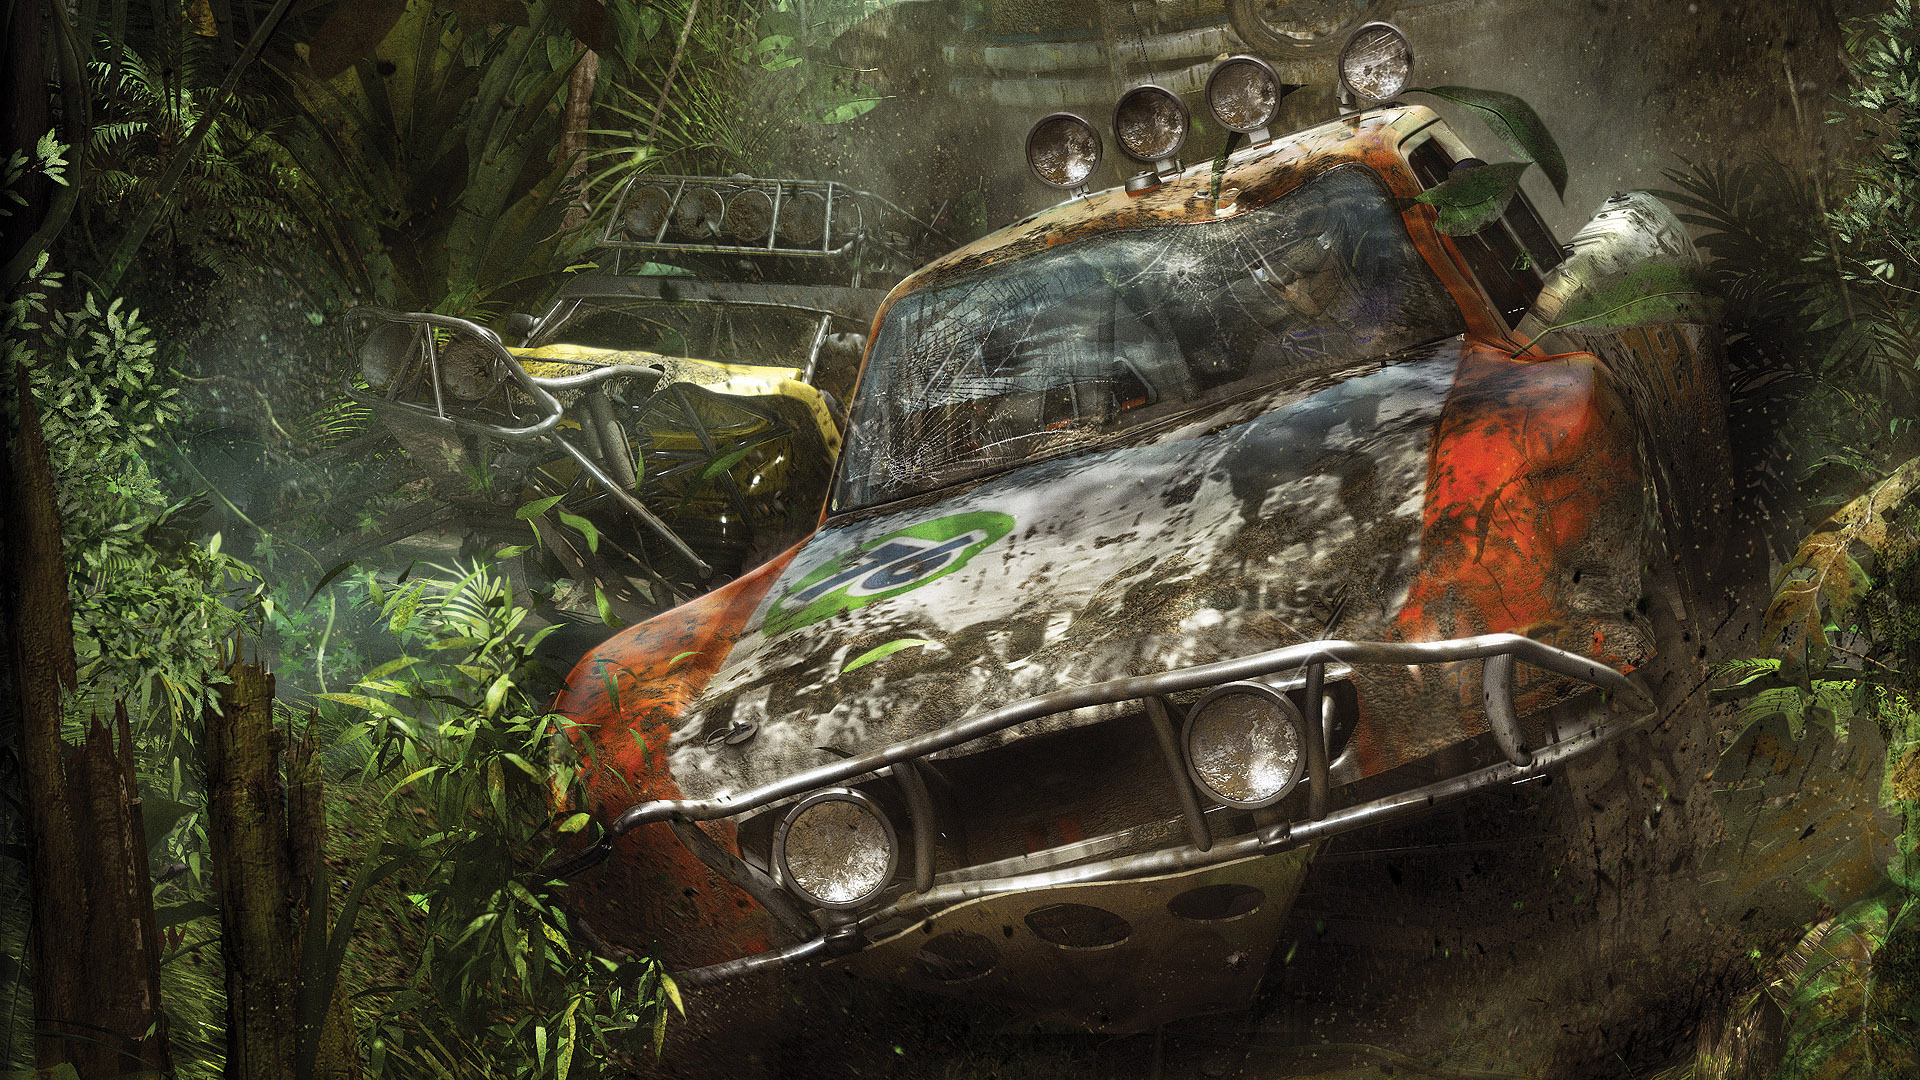 Crashed car in the jungle